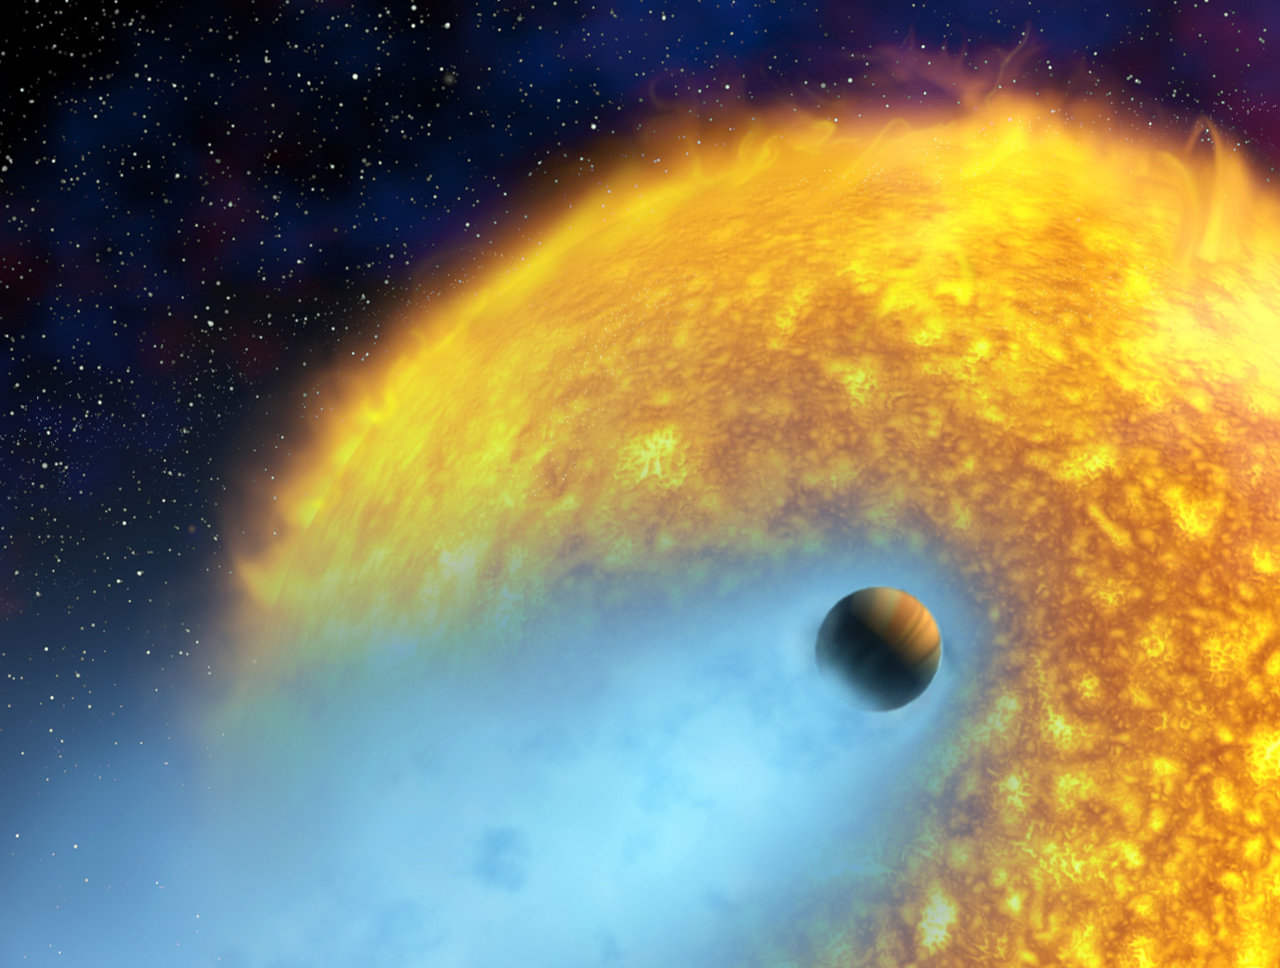 November 27, 2001: First Atmosphere Discovered on Extrasolar Planet